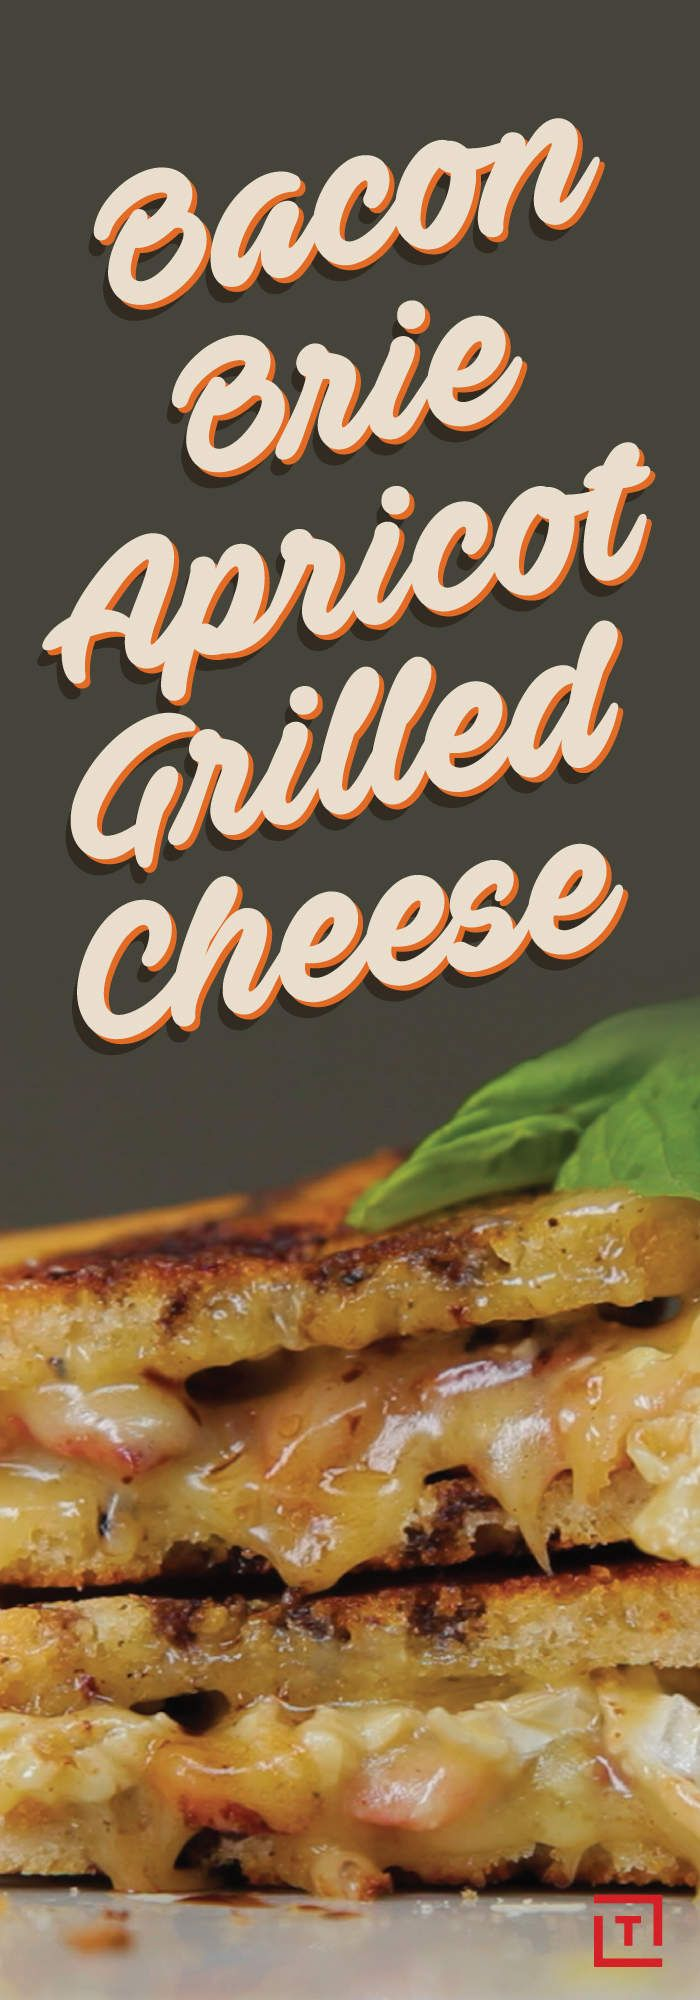 Ah, the grilled cheese sandwich. Revered by college students who are just slightly too good for microwavable ramen; lauded by mothers looking for a quick, easy dinner to feed their kids; the ultimate soulmate of tomato soup. We're all for the old-school grilled cheese, but we also appreciate a modern, classy change-up -- case in point, Food Steez's recipe for a bacon, Brie, and apricot redux.